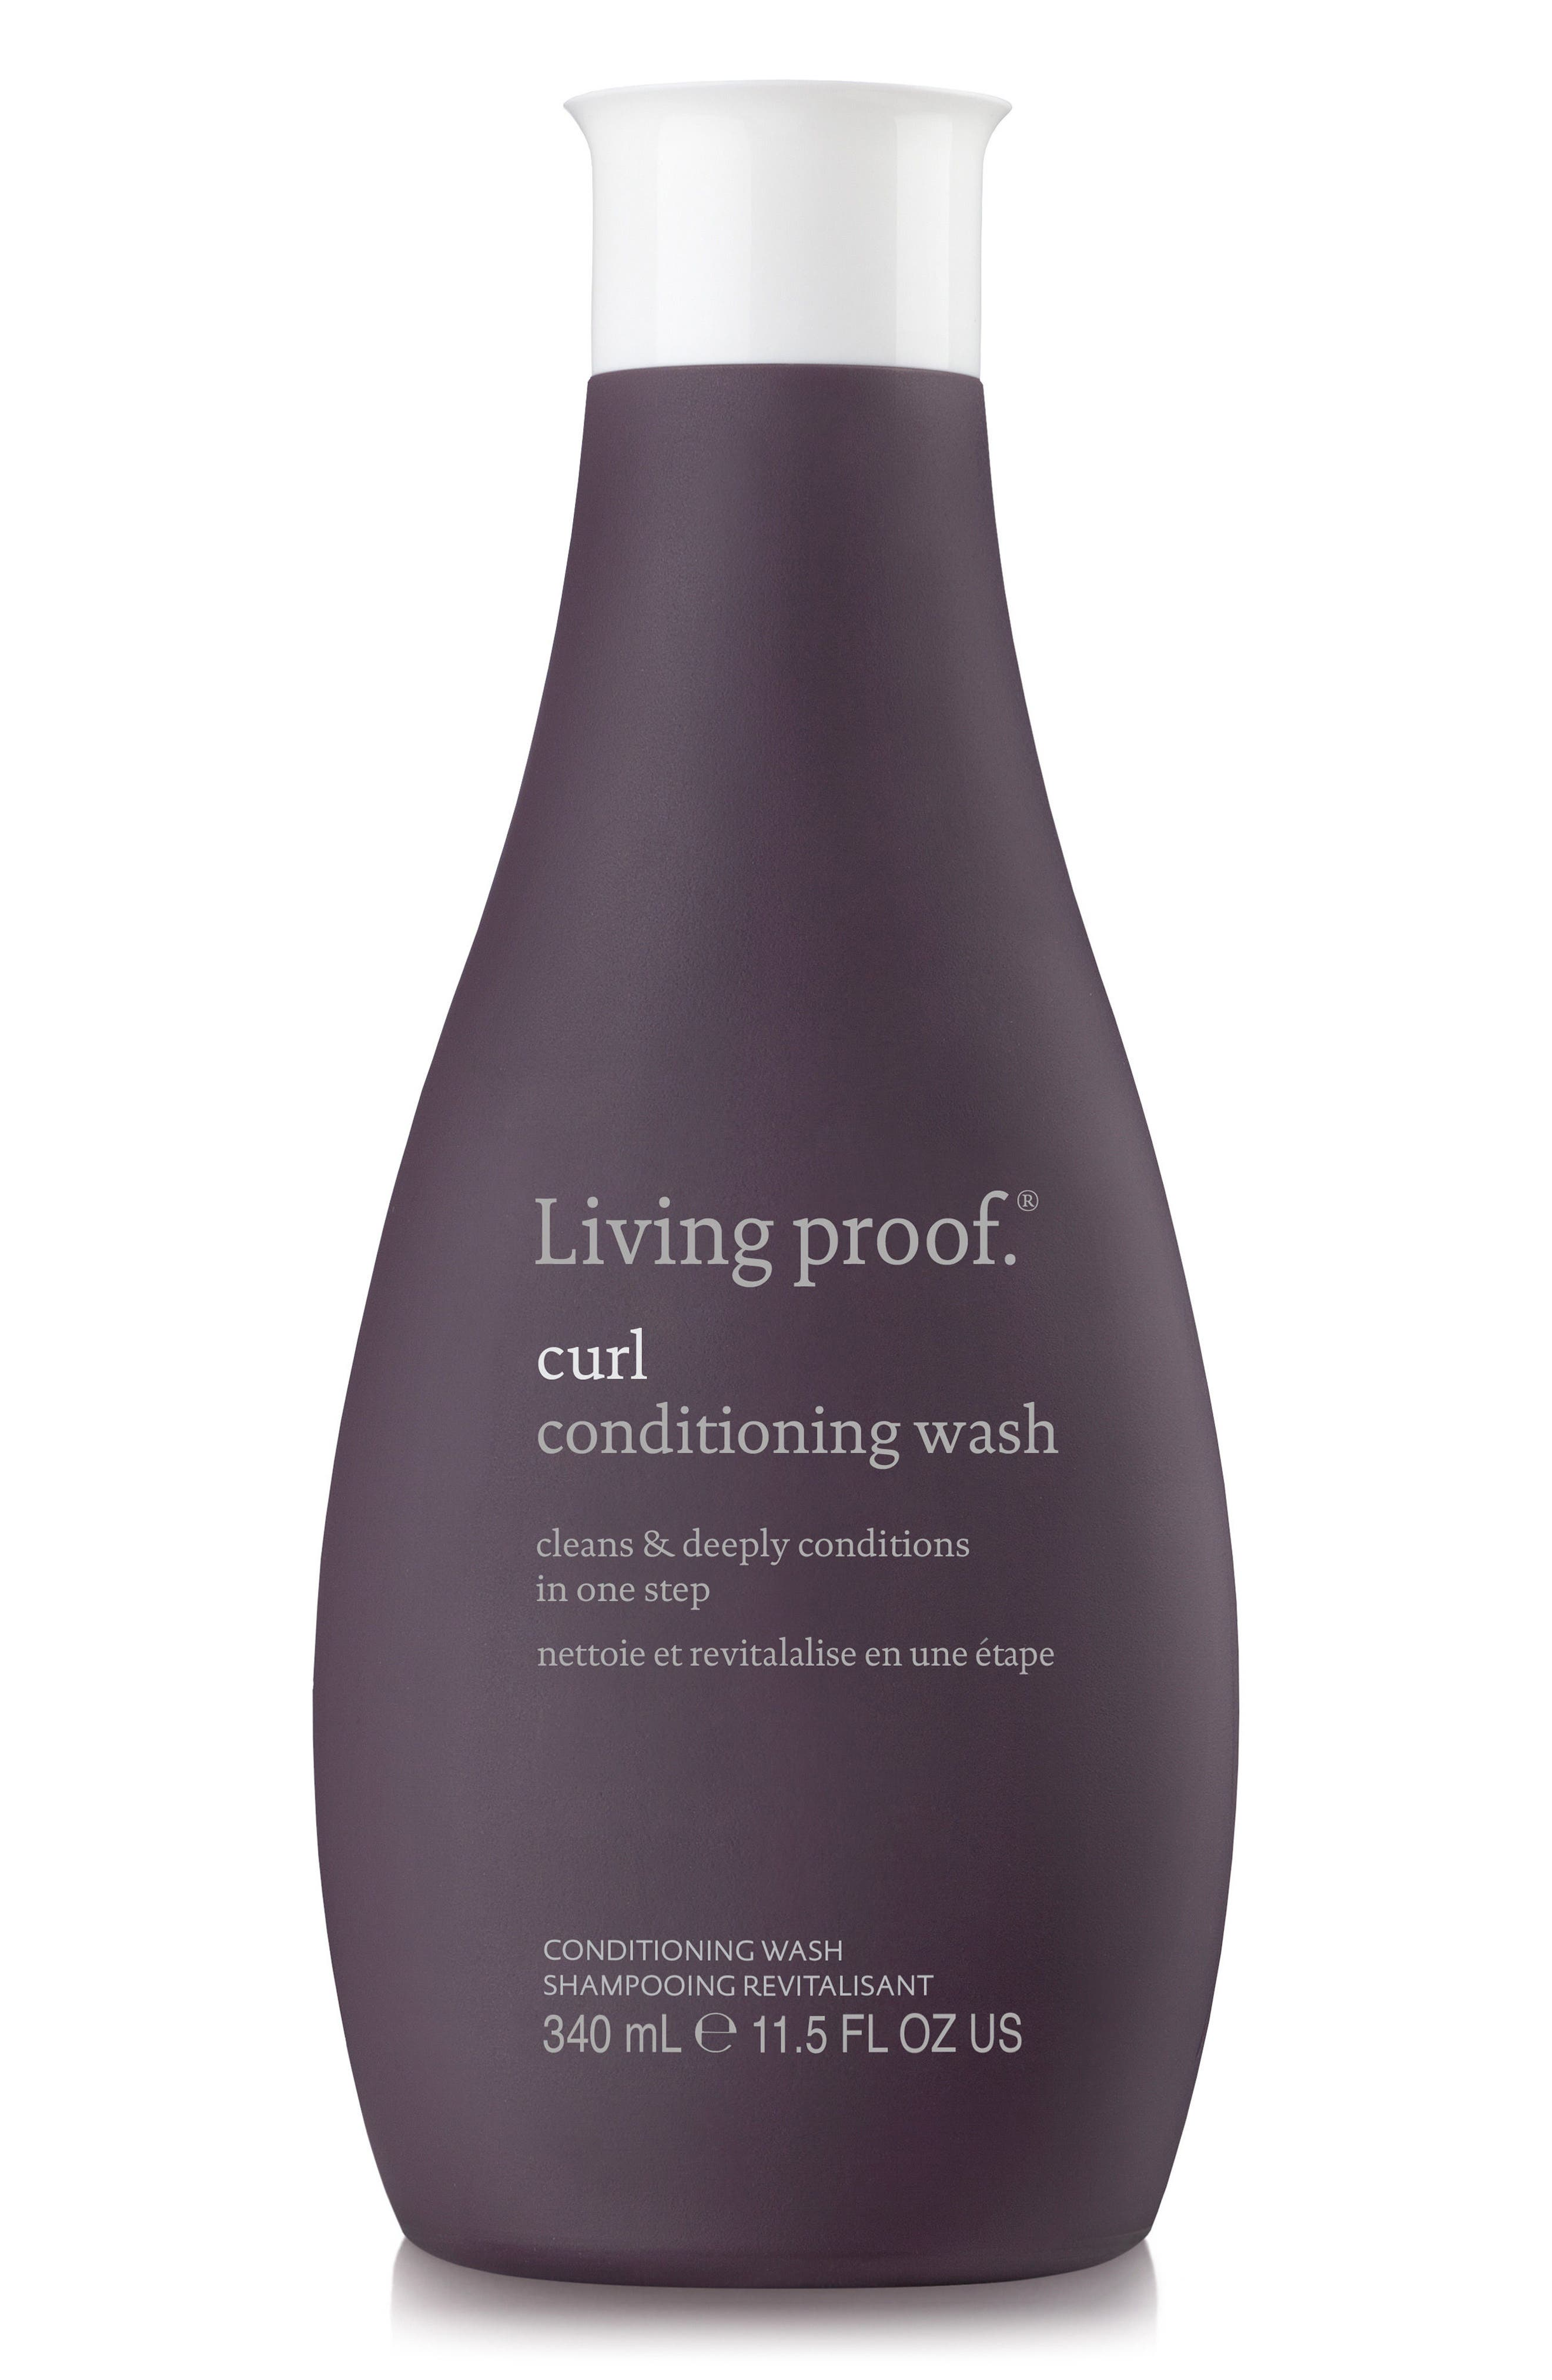 Alternate Image 1 Selected - Living proof® Curl Conditioning Wash